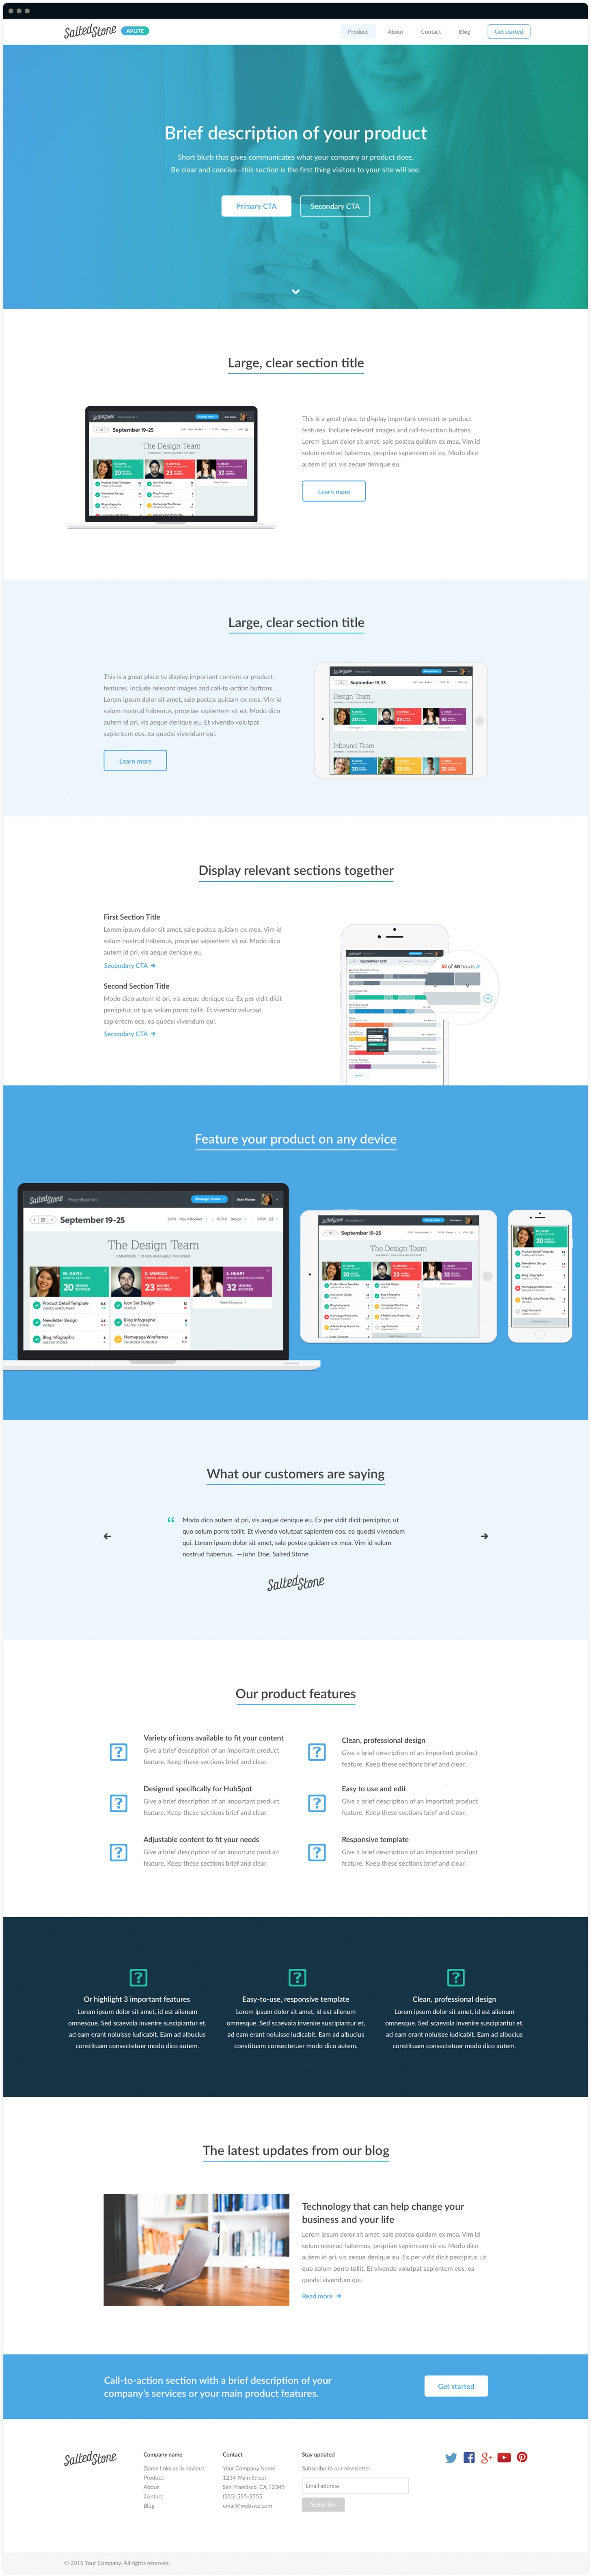 Aplite HubSpot Custom Template Designed and Developed by Salted Stone